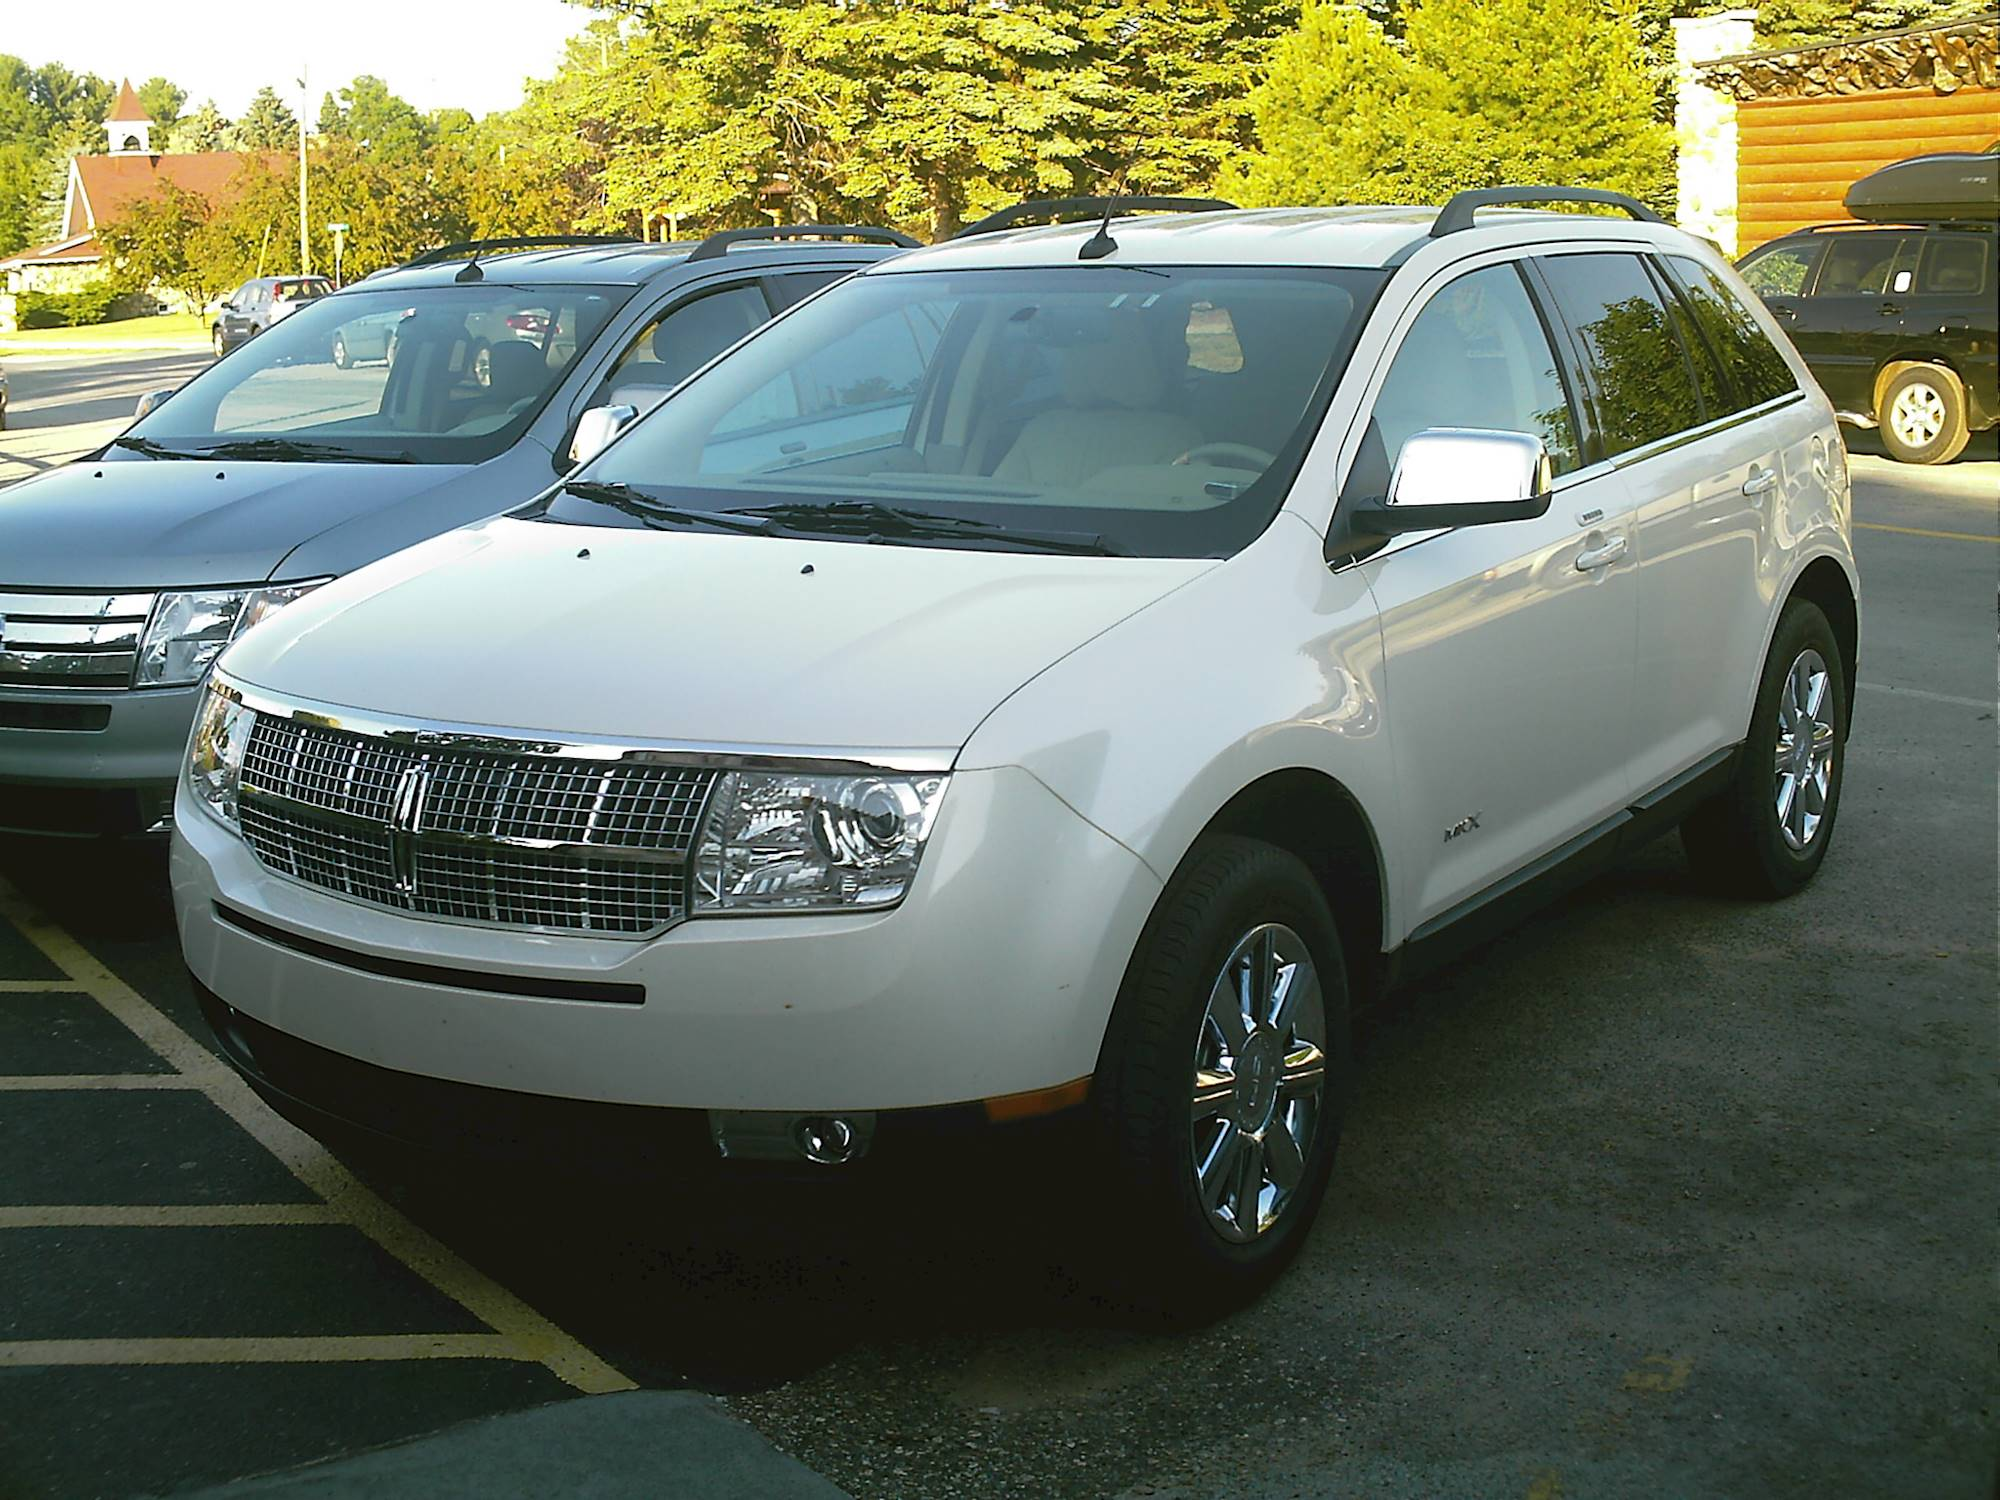 2008 Lincoln Mkx Problems >> 2008 Lincoln Mkx Fwd 4 Door